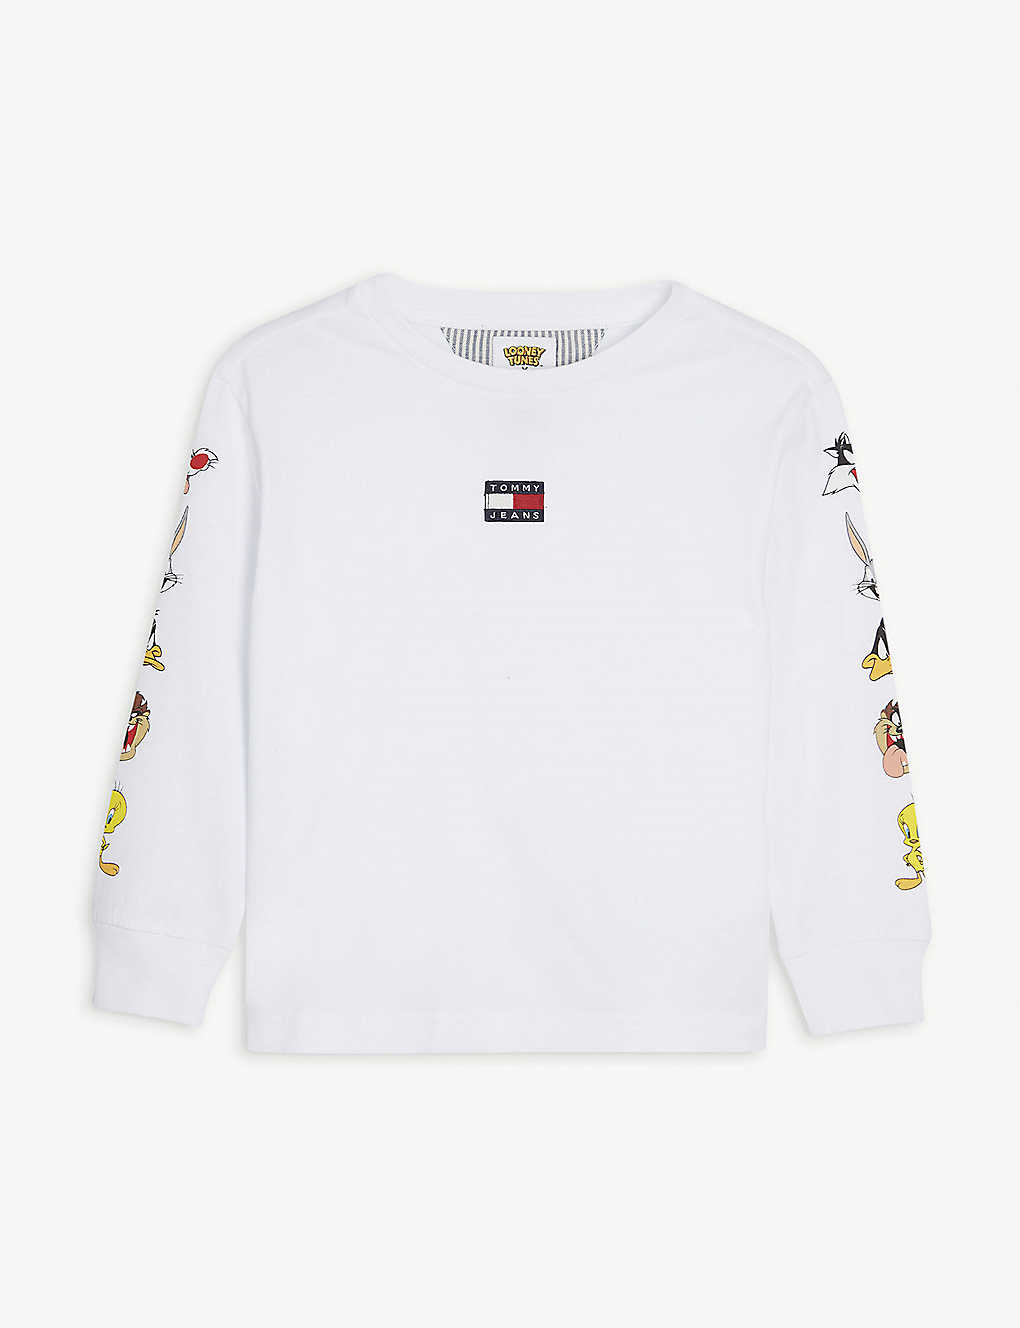 TOMMY HILFIGER: Tommy Jeans x Looney Tunes long sleeved cotton top 4-12 years